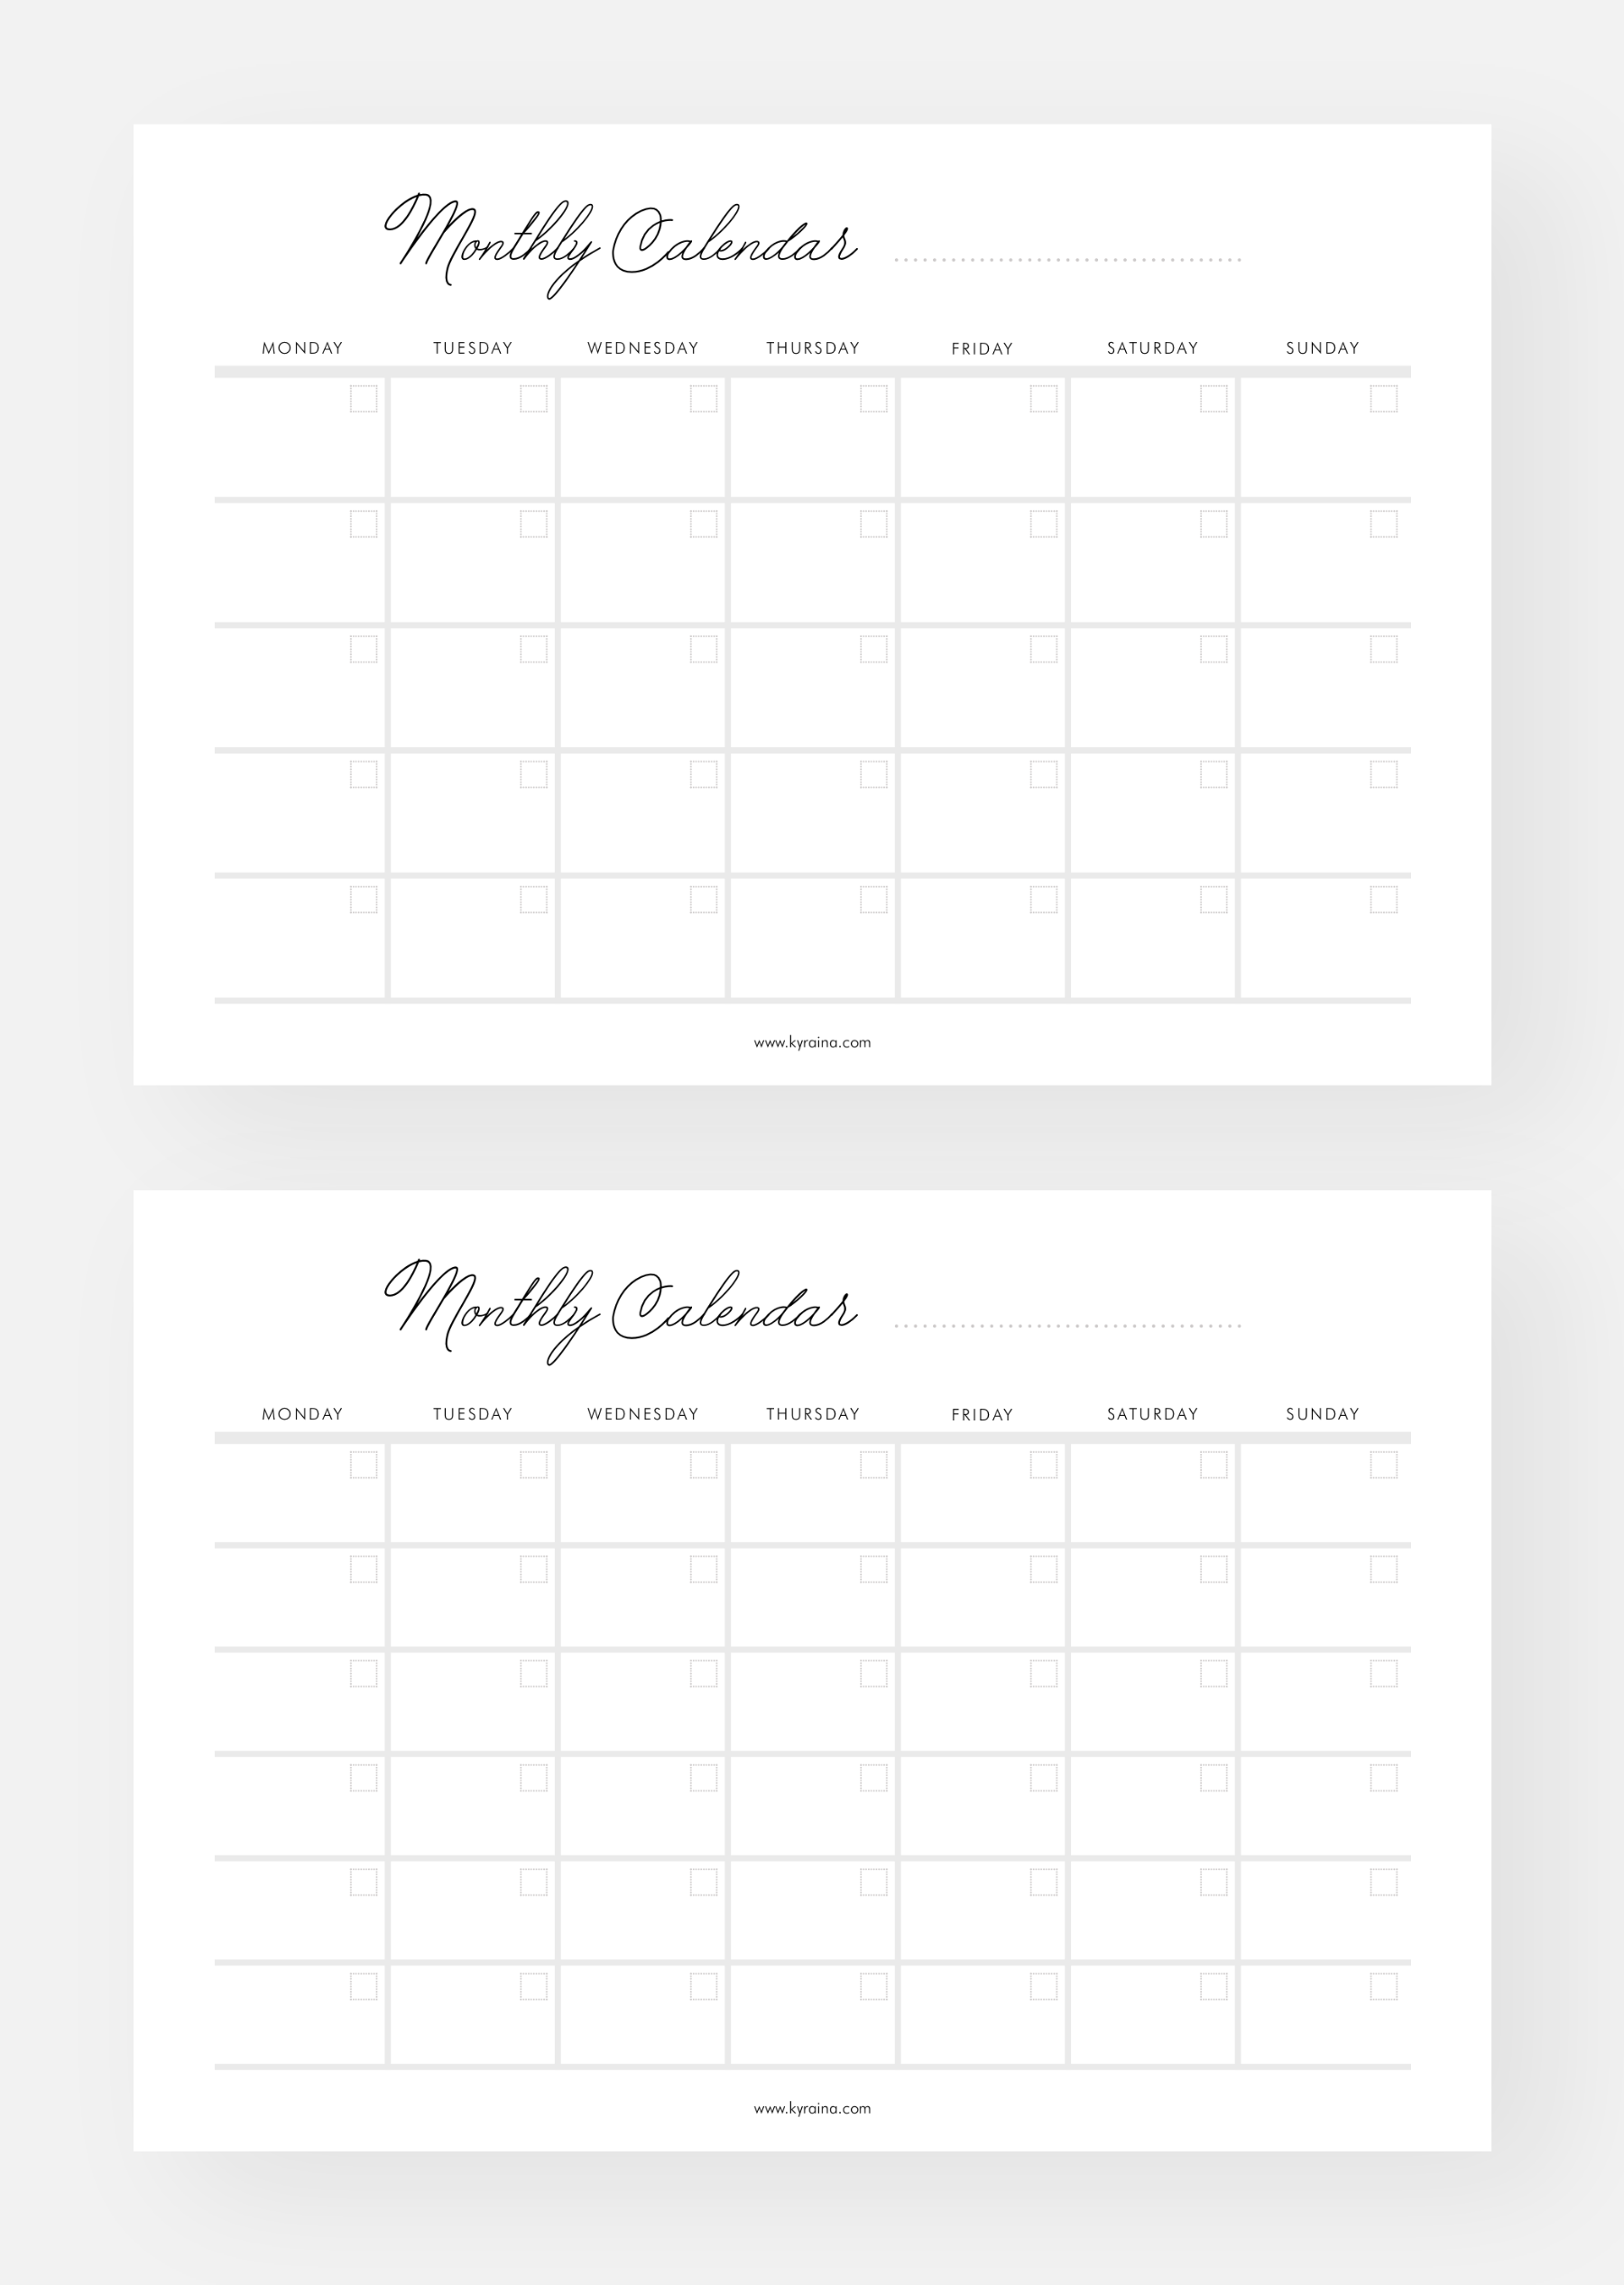 Free Monthly Calendar Planner Printable Templates - From Simply Elegant Planner Pack - 6 Pages